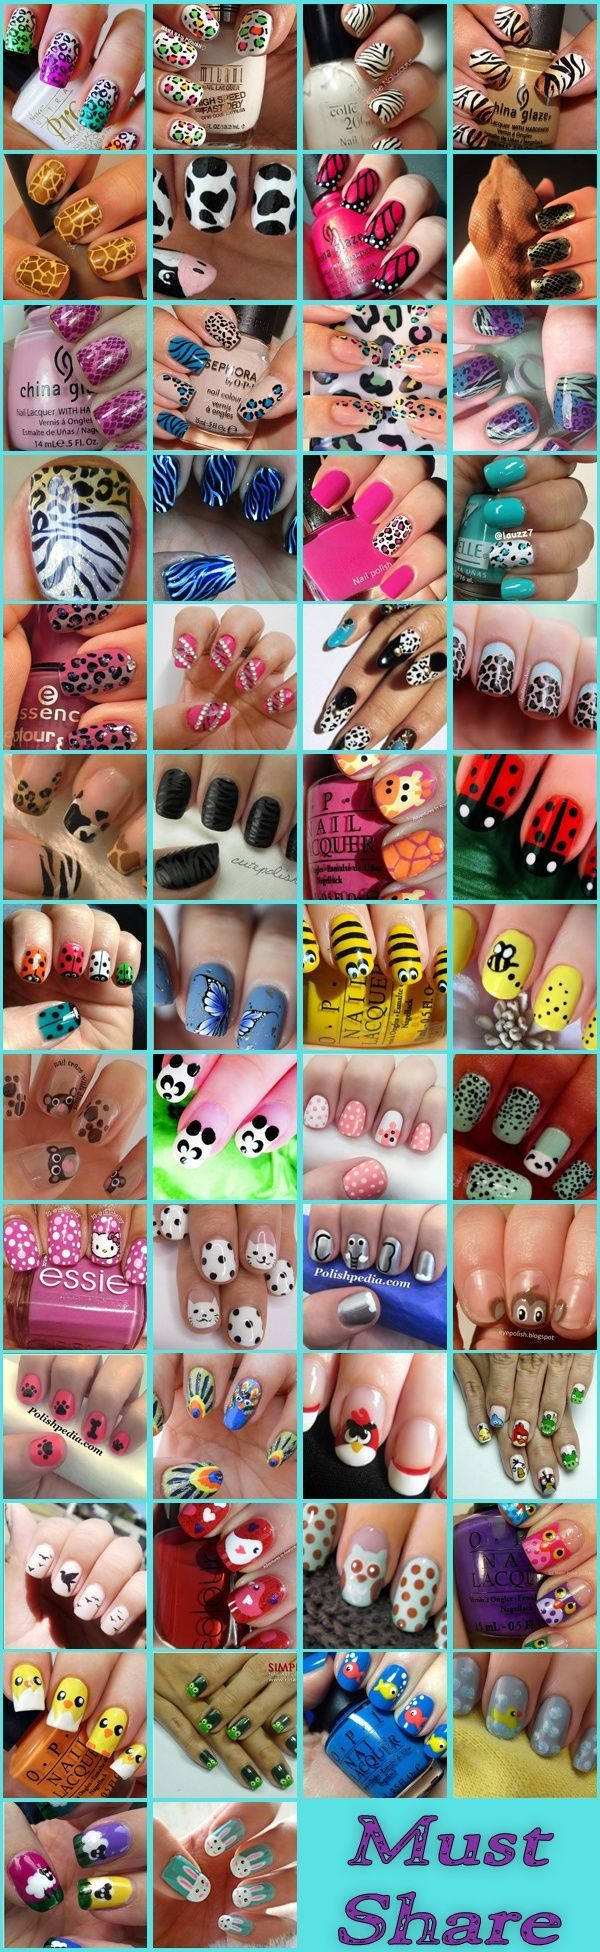 awesome 50 Amazing Nail Art Designs For Beginners With Styling Tips